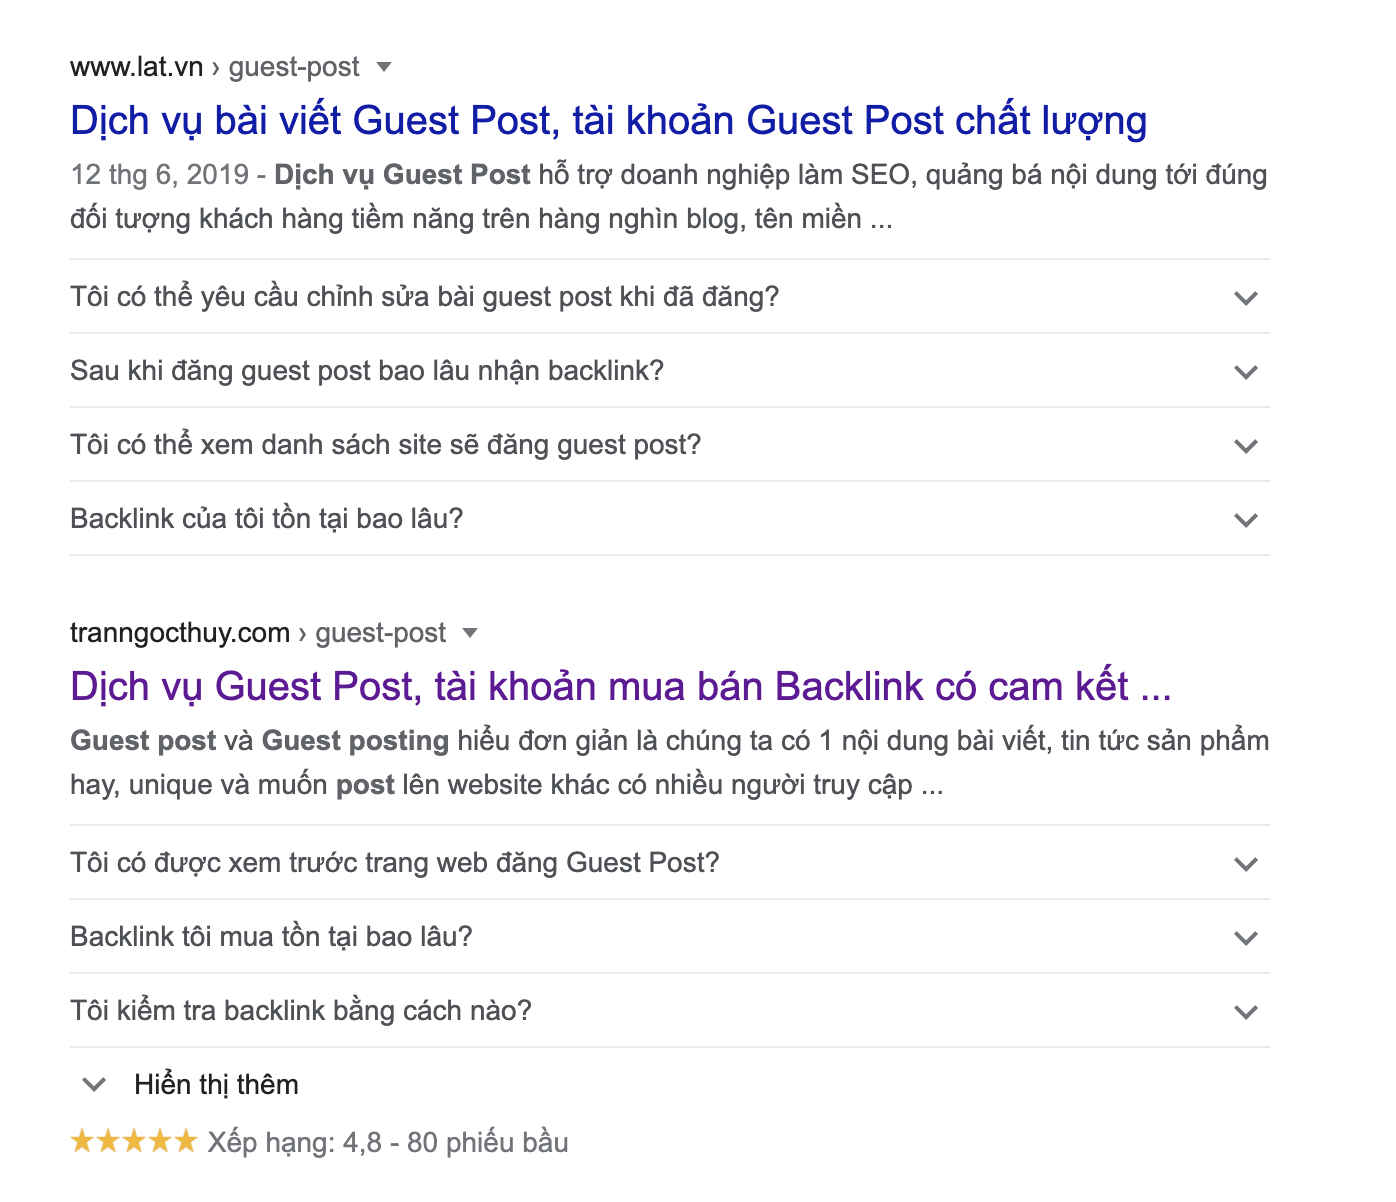 dich-vu-guest-post-FAQs.png